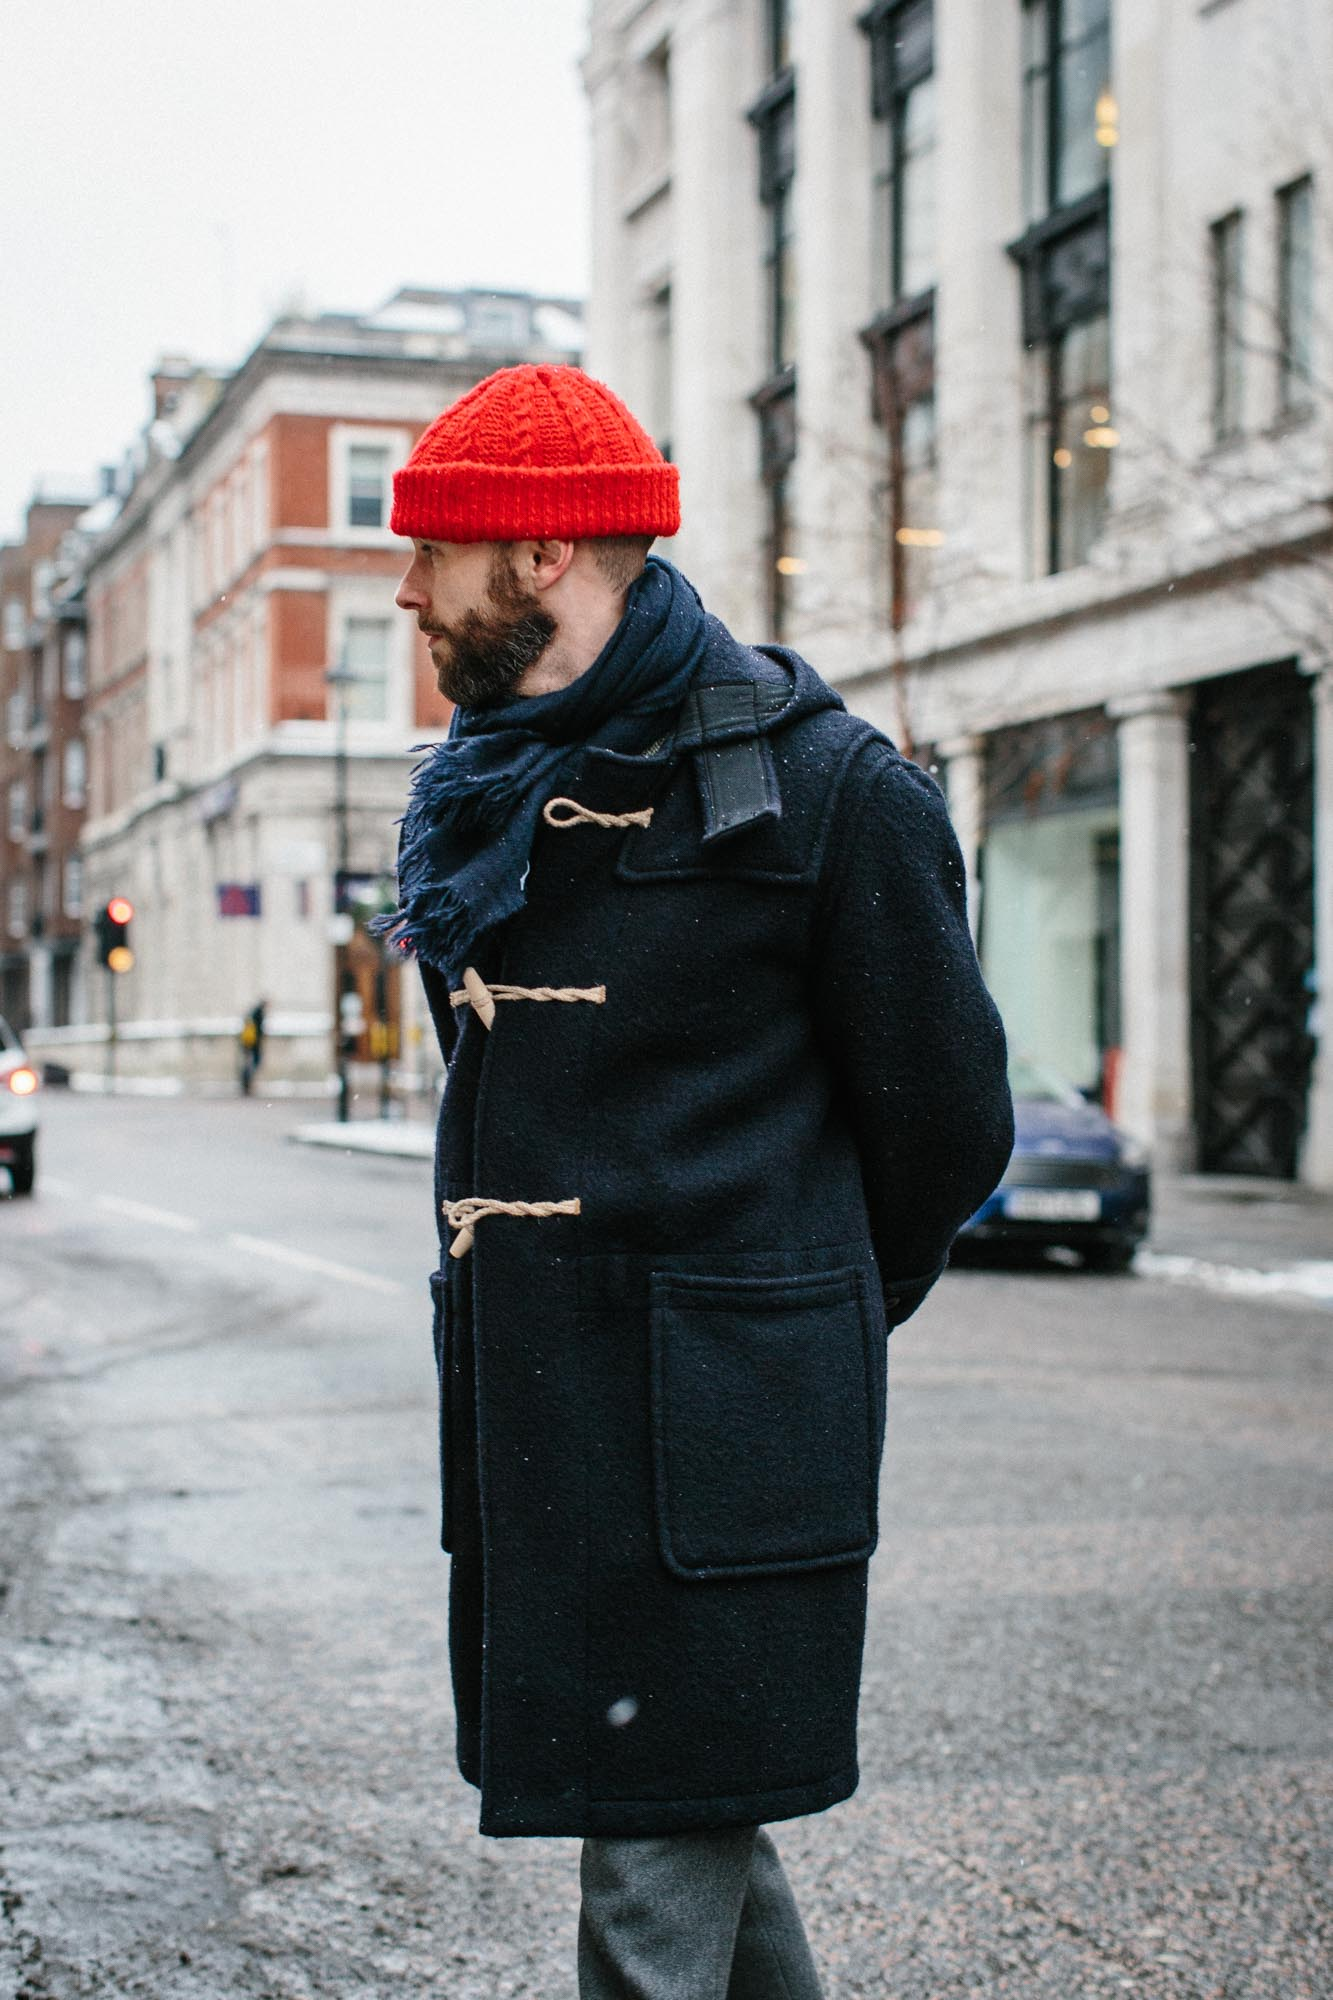 ralph lauren black puffer jacket polo in the city melbourne